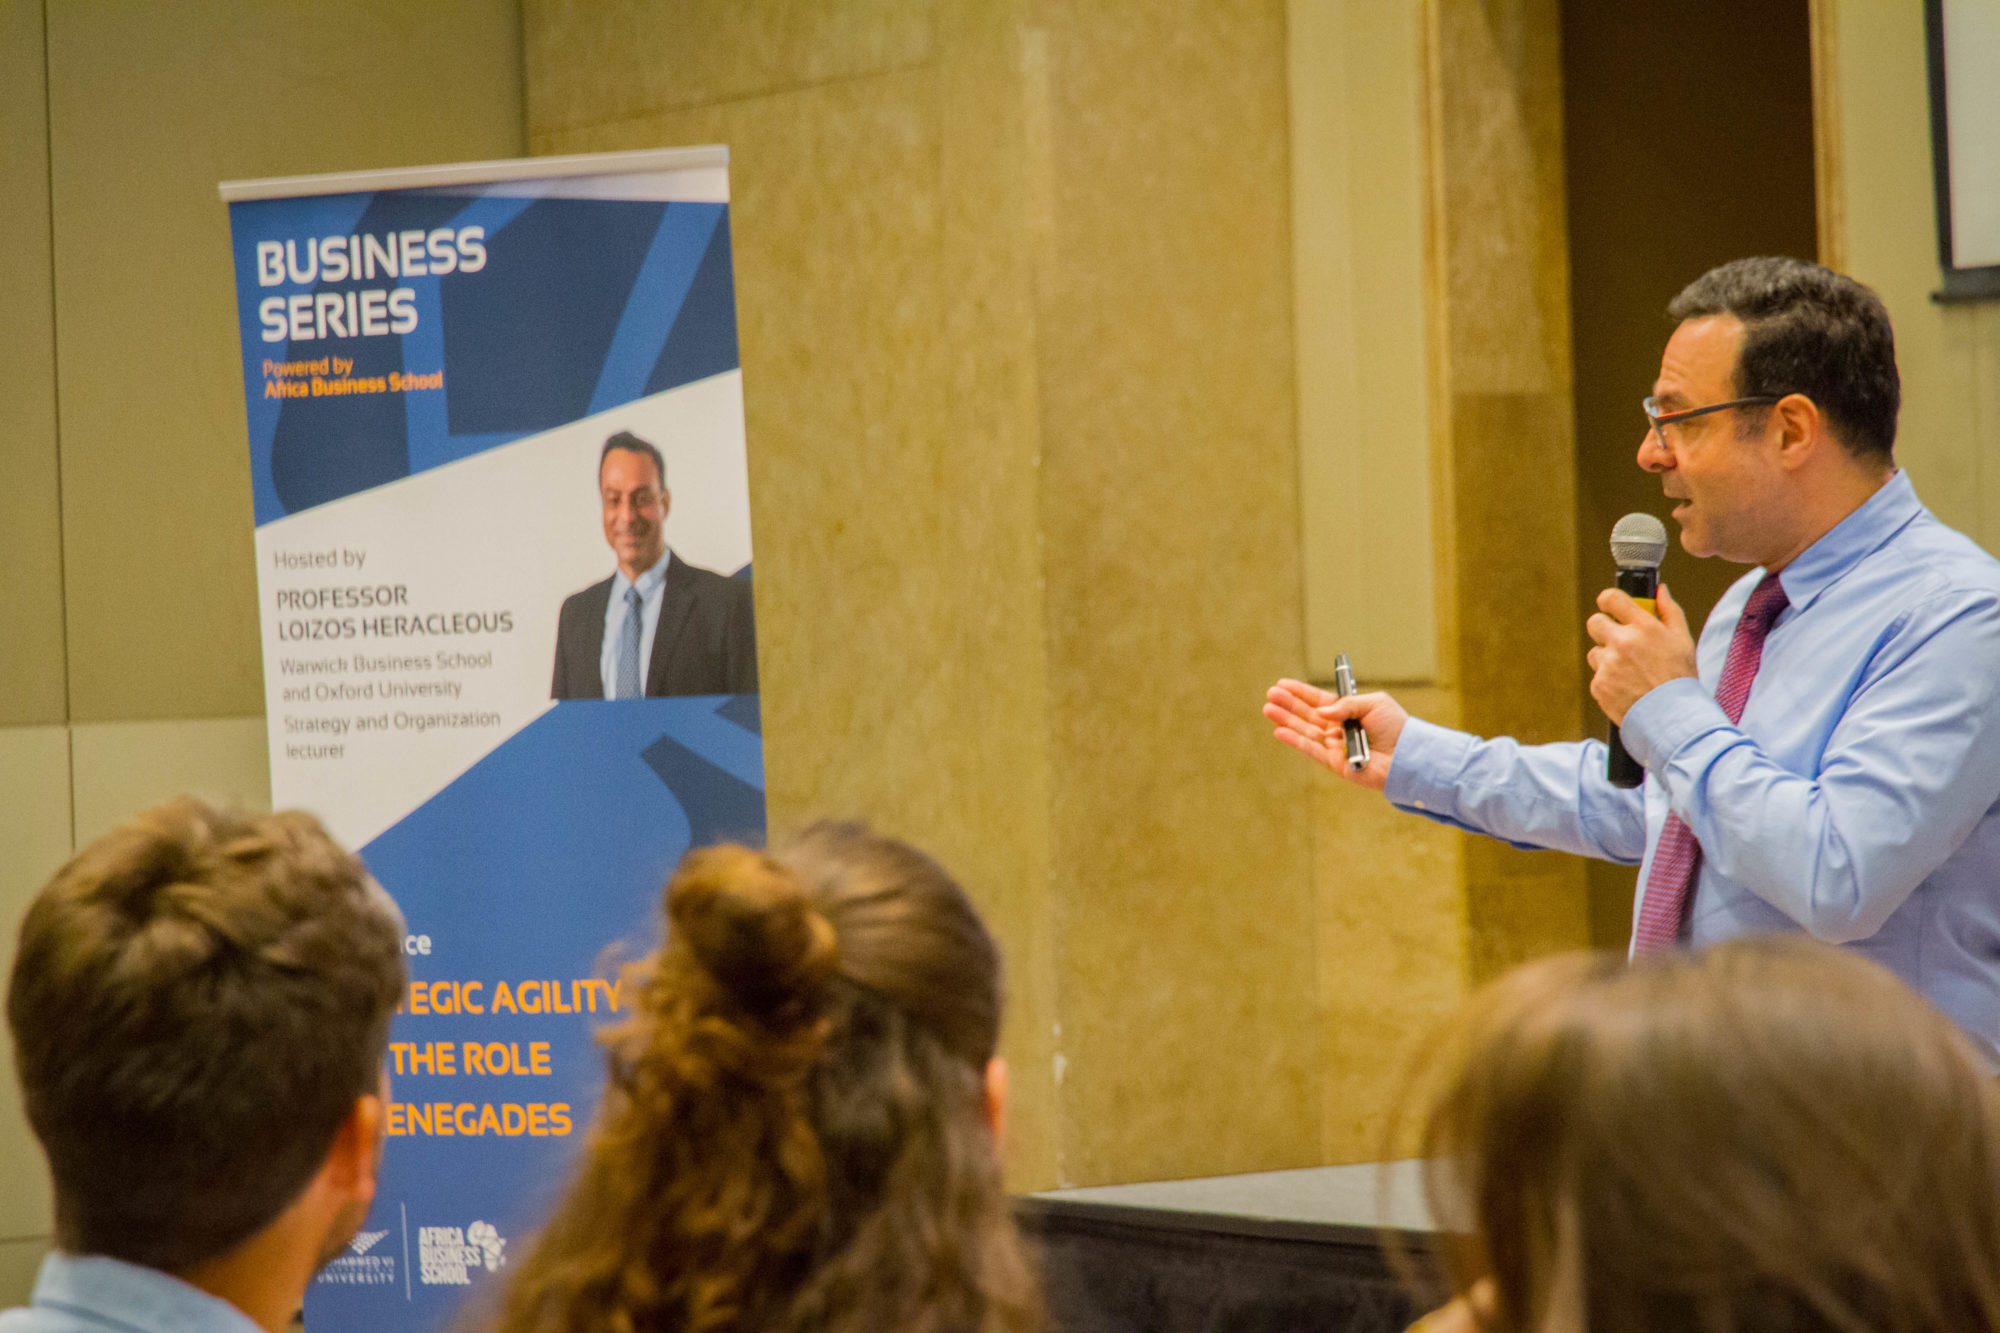 Business Series with Pr. Loizos Heracleous - Africa Business School